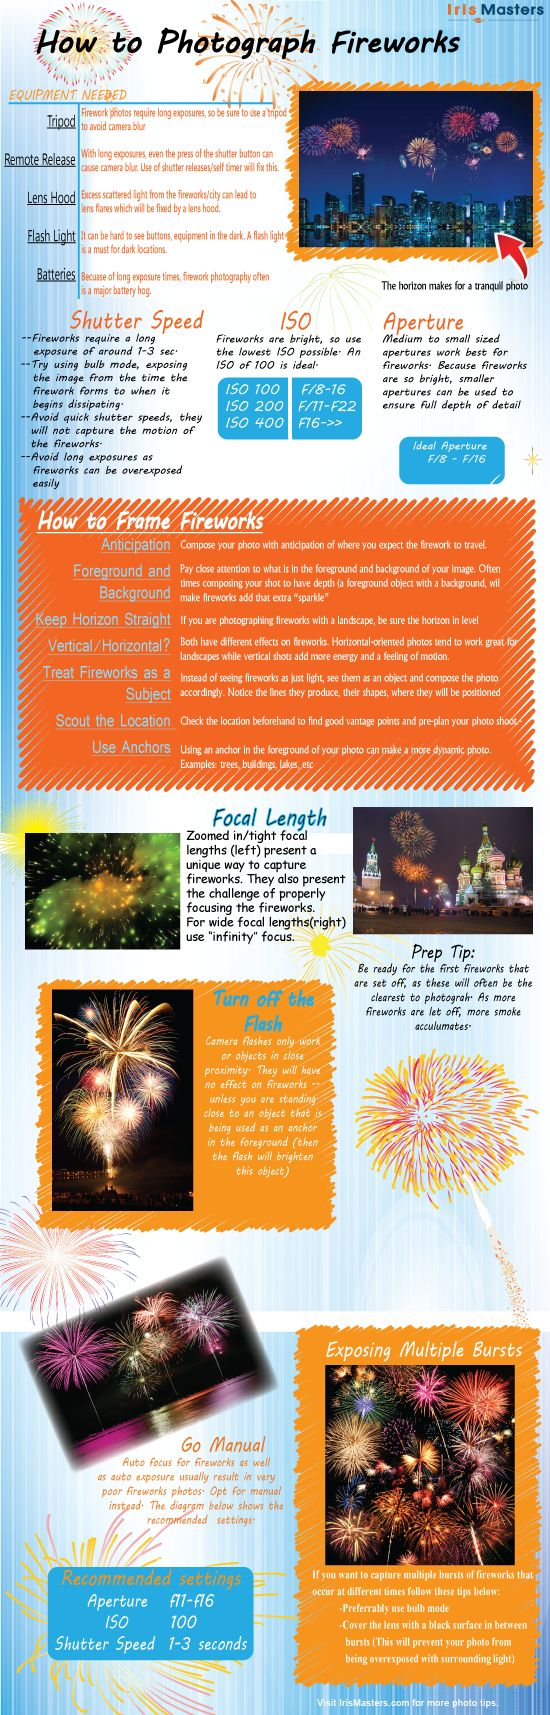 [Infographic] How to Photograph Fireworks